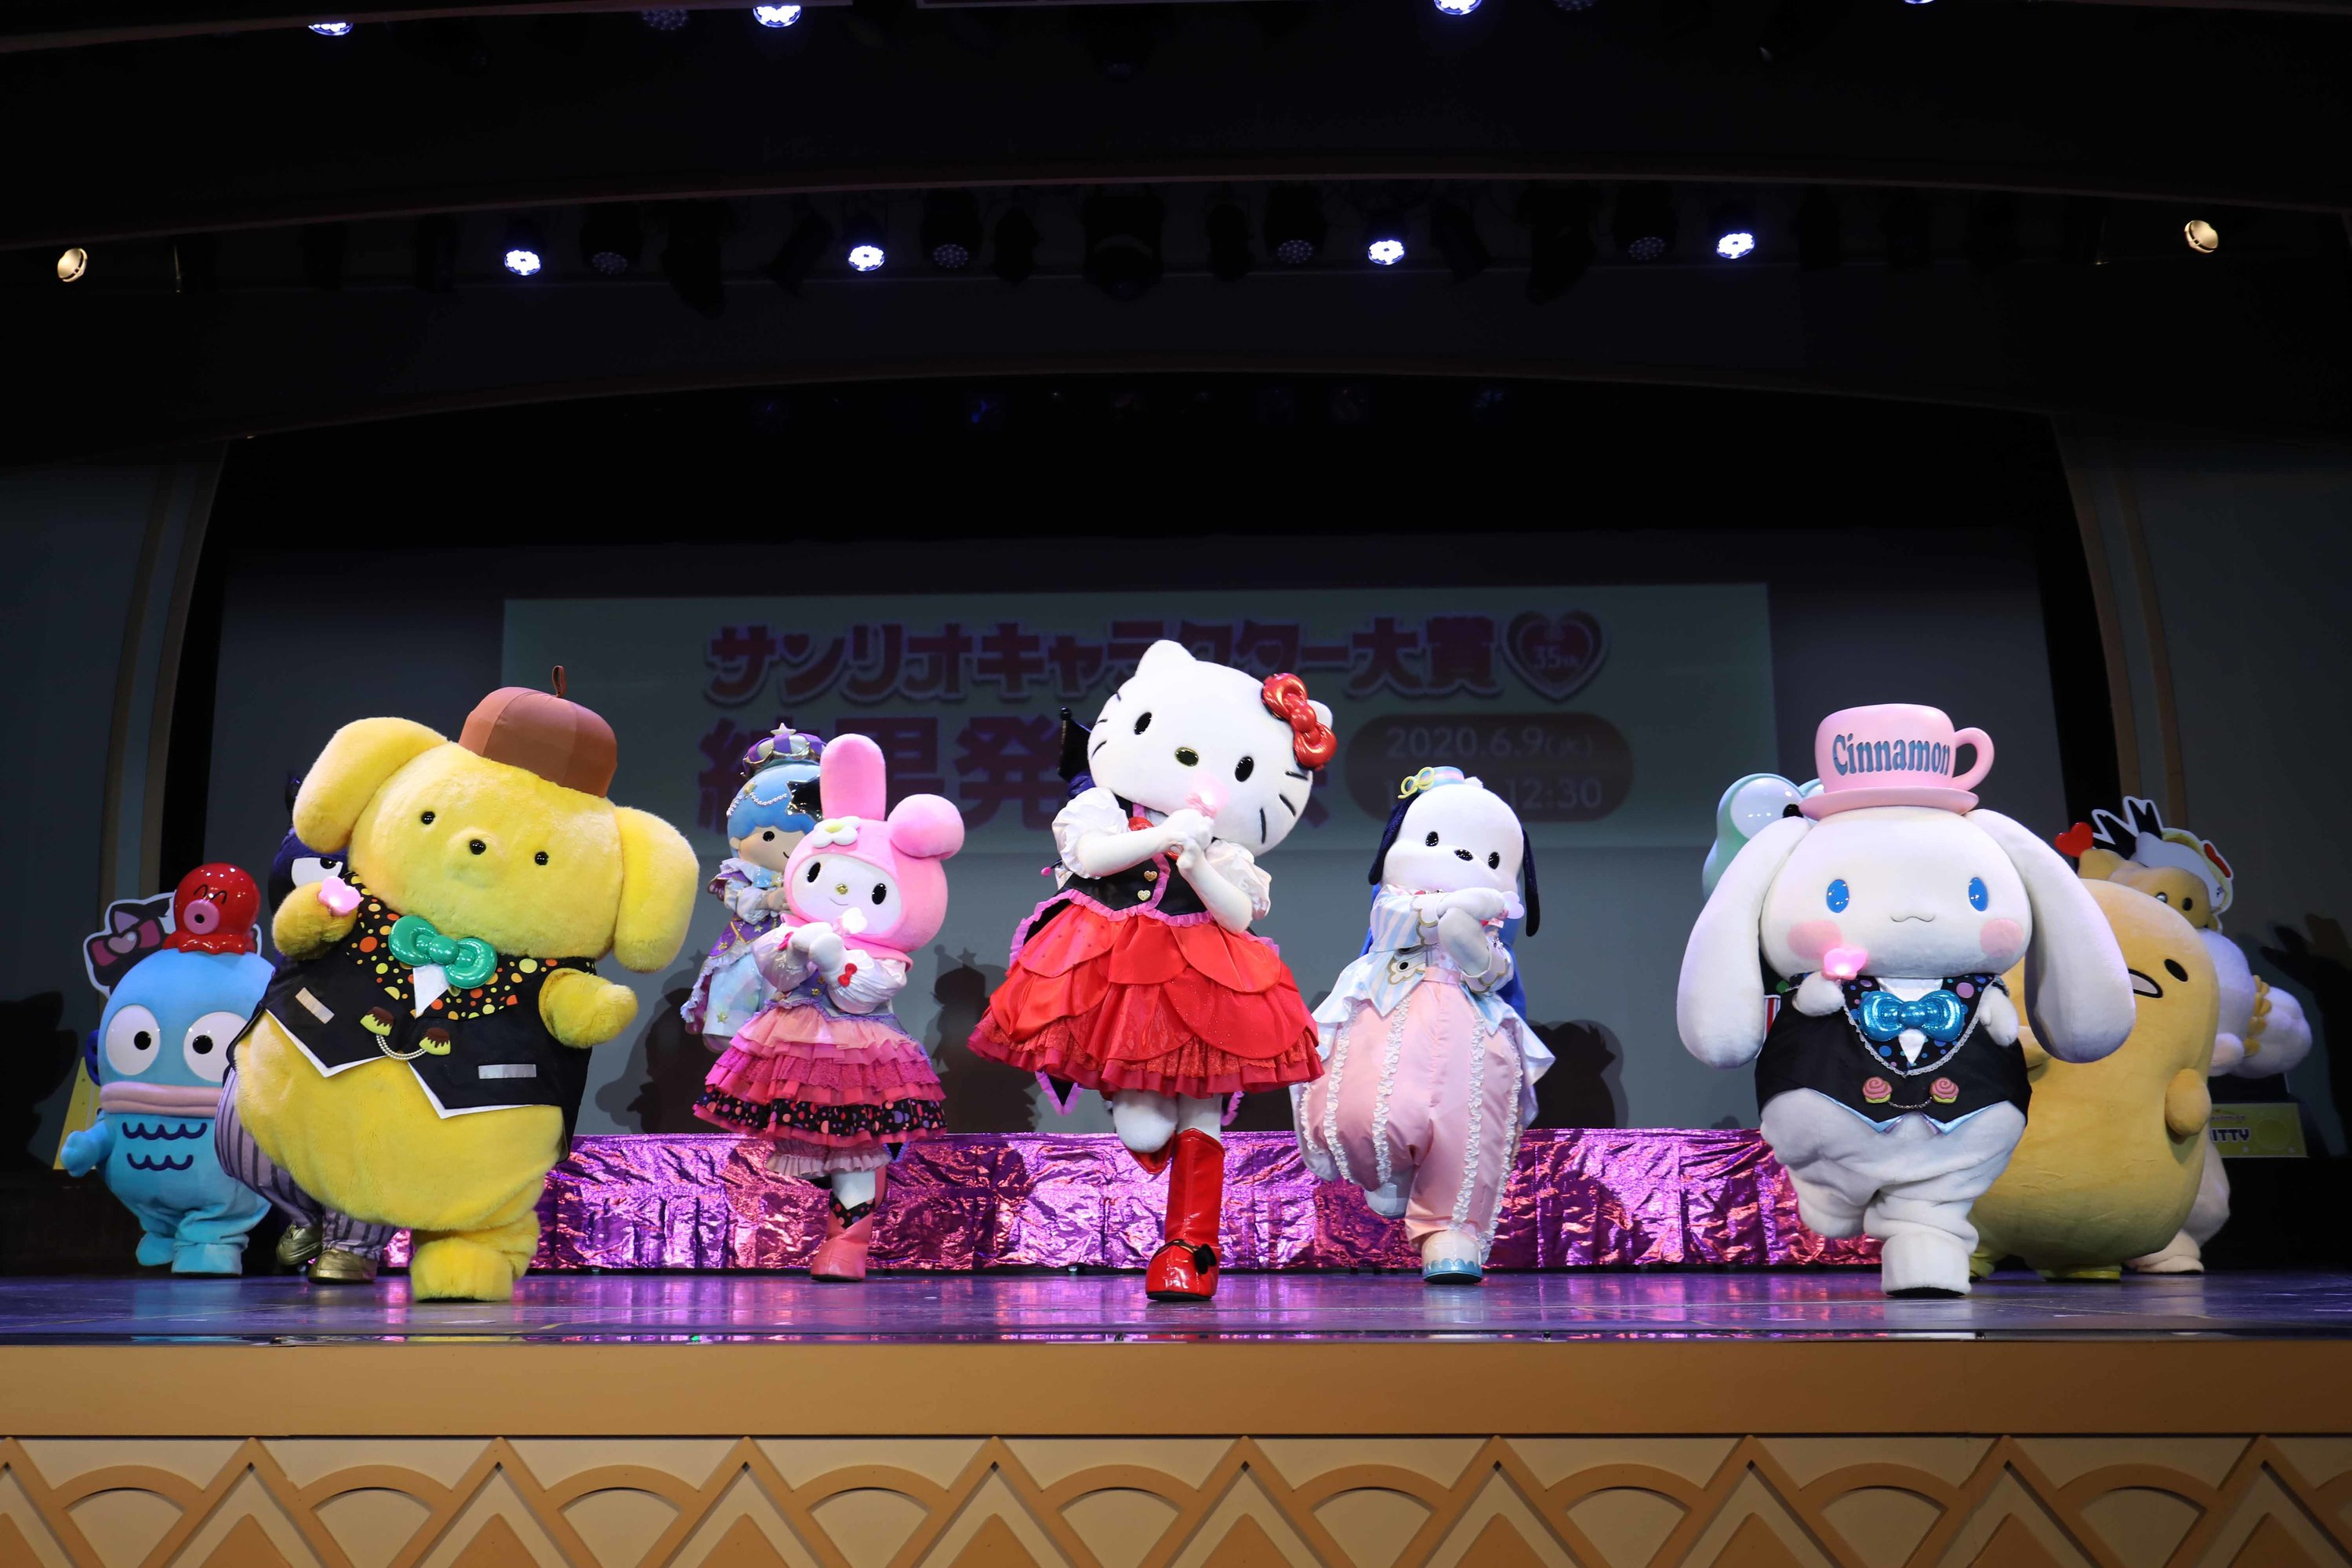 Cinnamoroll is the most popular Sanrio character in Japan, as ranked by fans